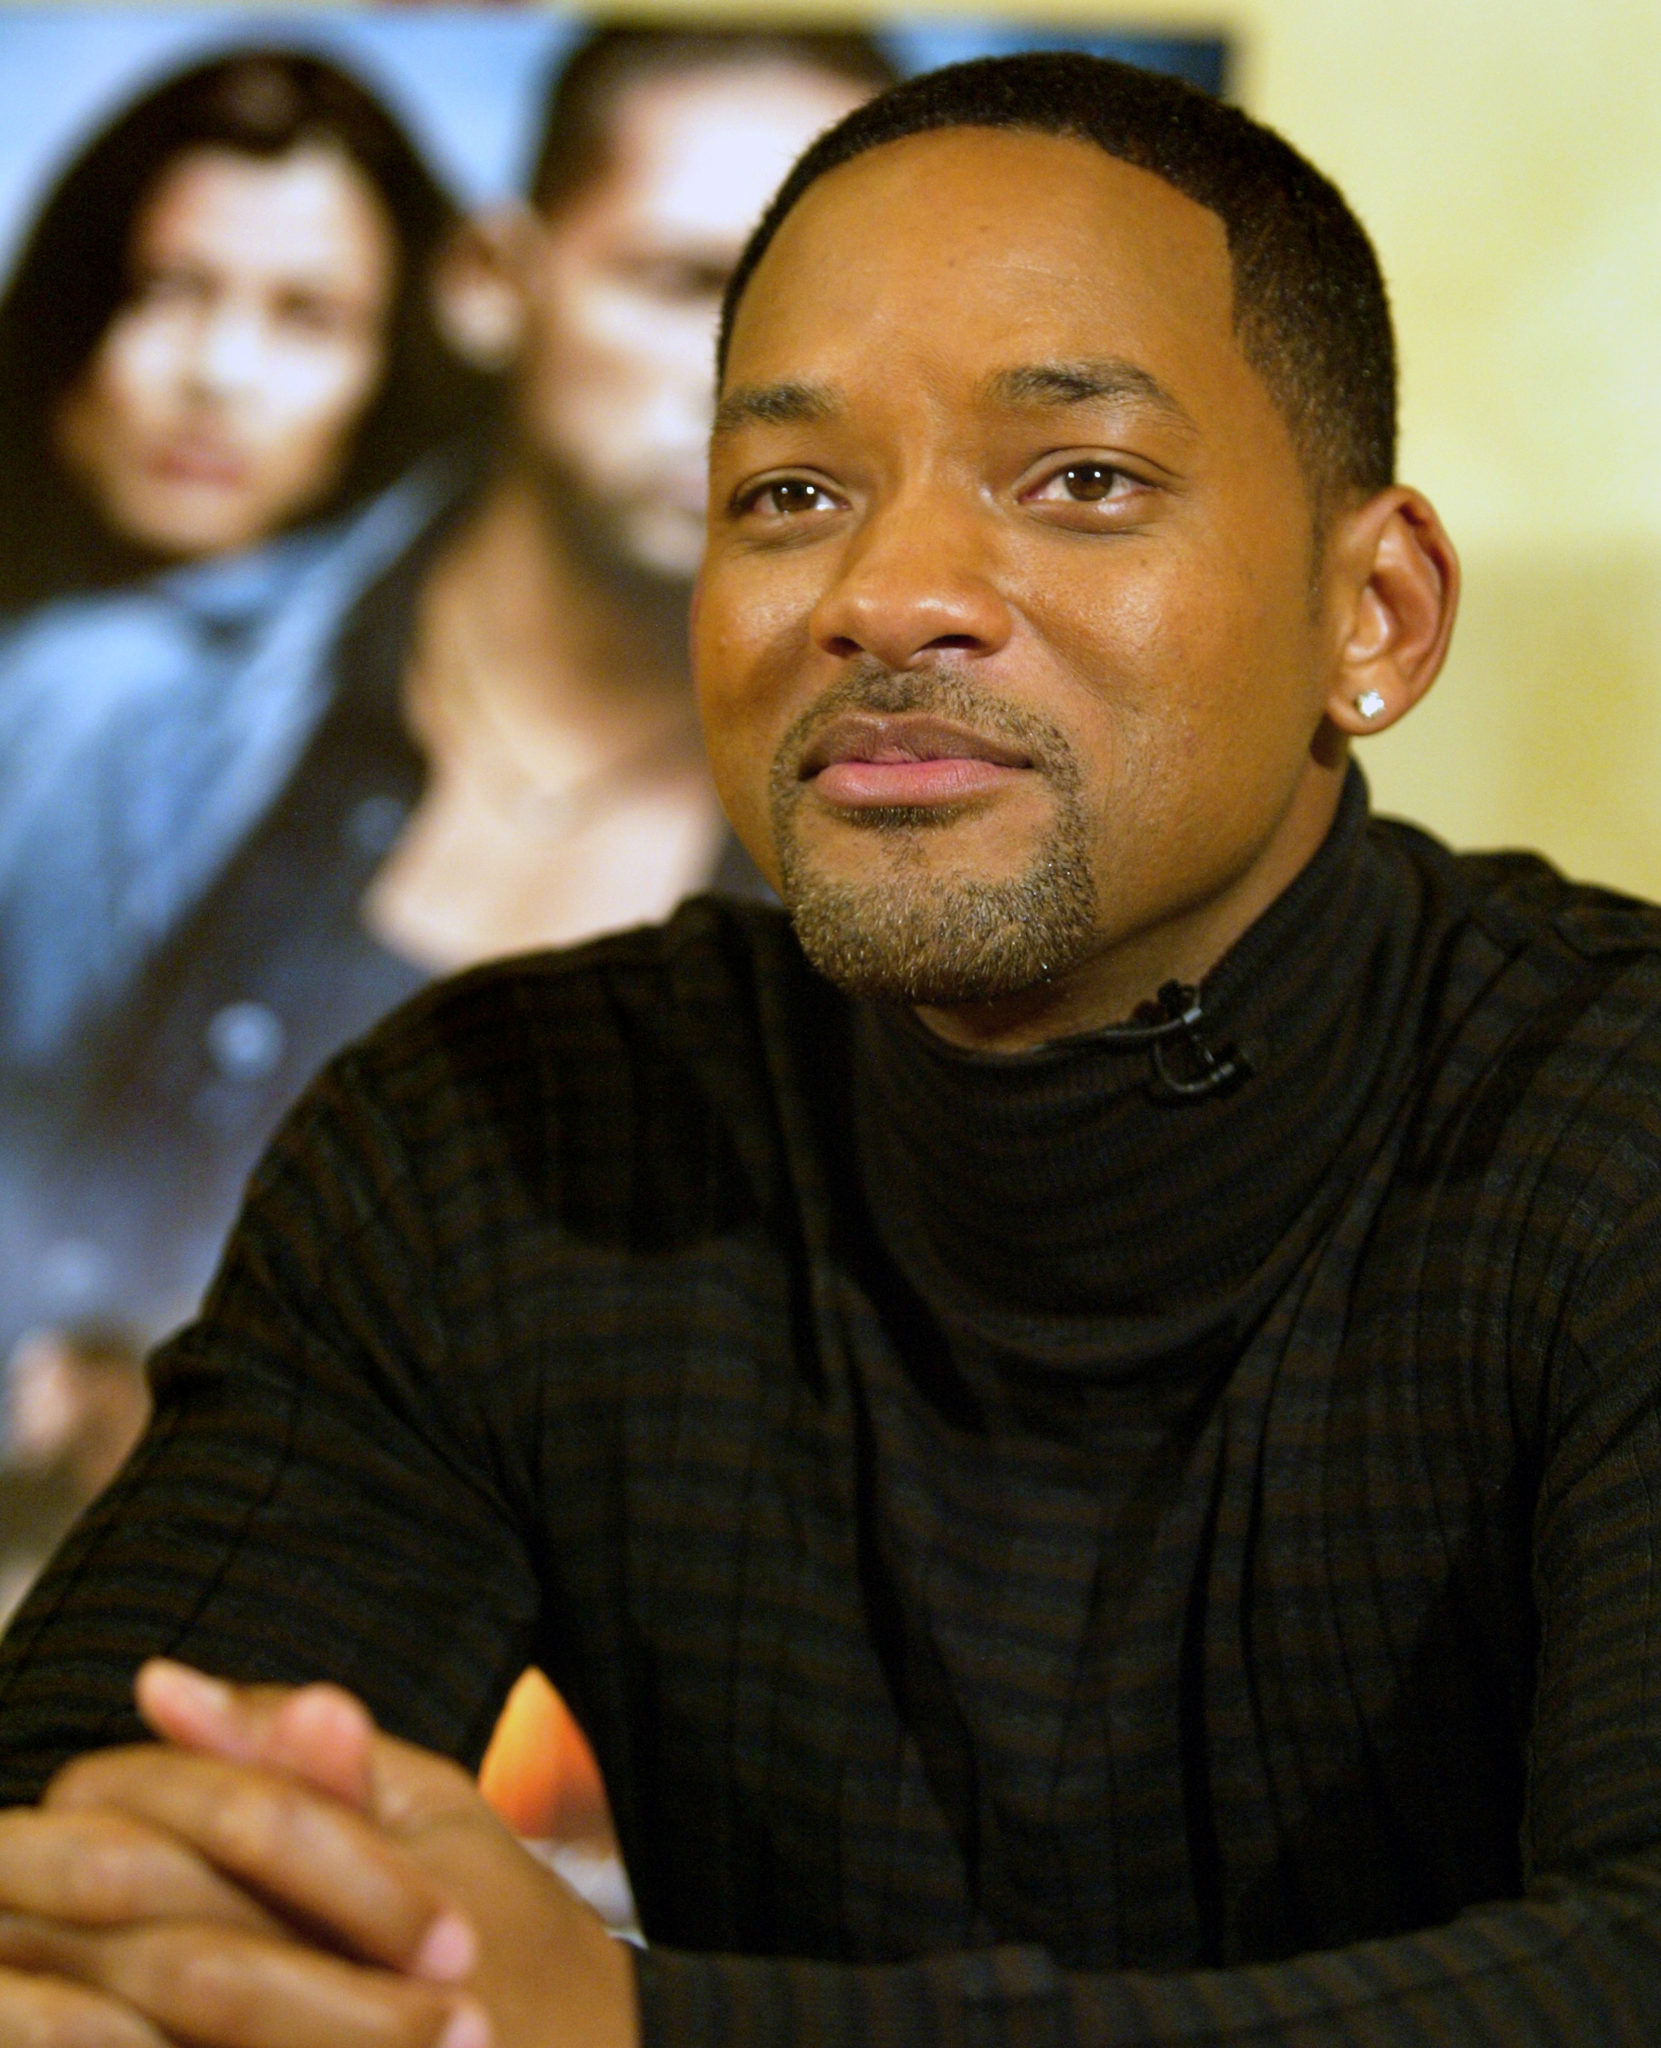 """American actor Will Smith speaks during an interview in Johannesburg, South Africa on Tuesday, Sept. 14, 2004. Two months after """"I, Robot,"""" his latest summer hit, opened in theaters across the United States, Smith is in South Africa for yet another gala premiere. Picture: Shayne Robinson"""